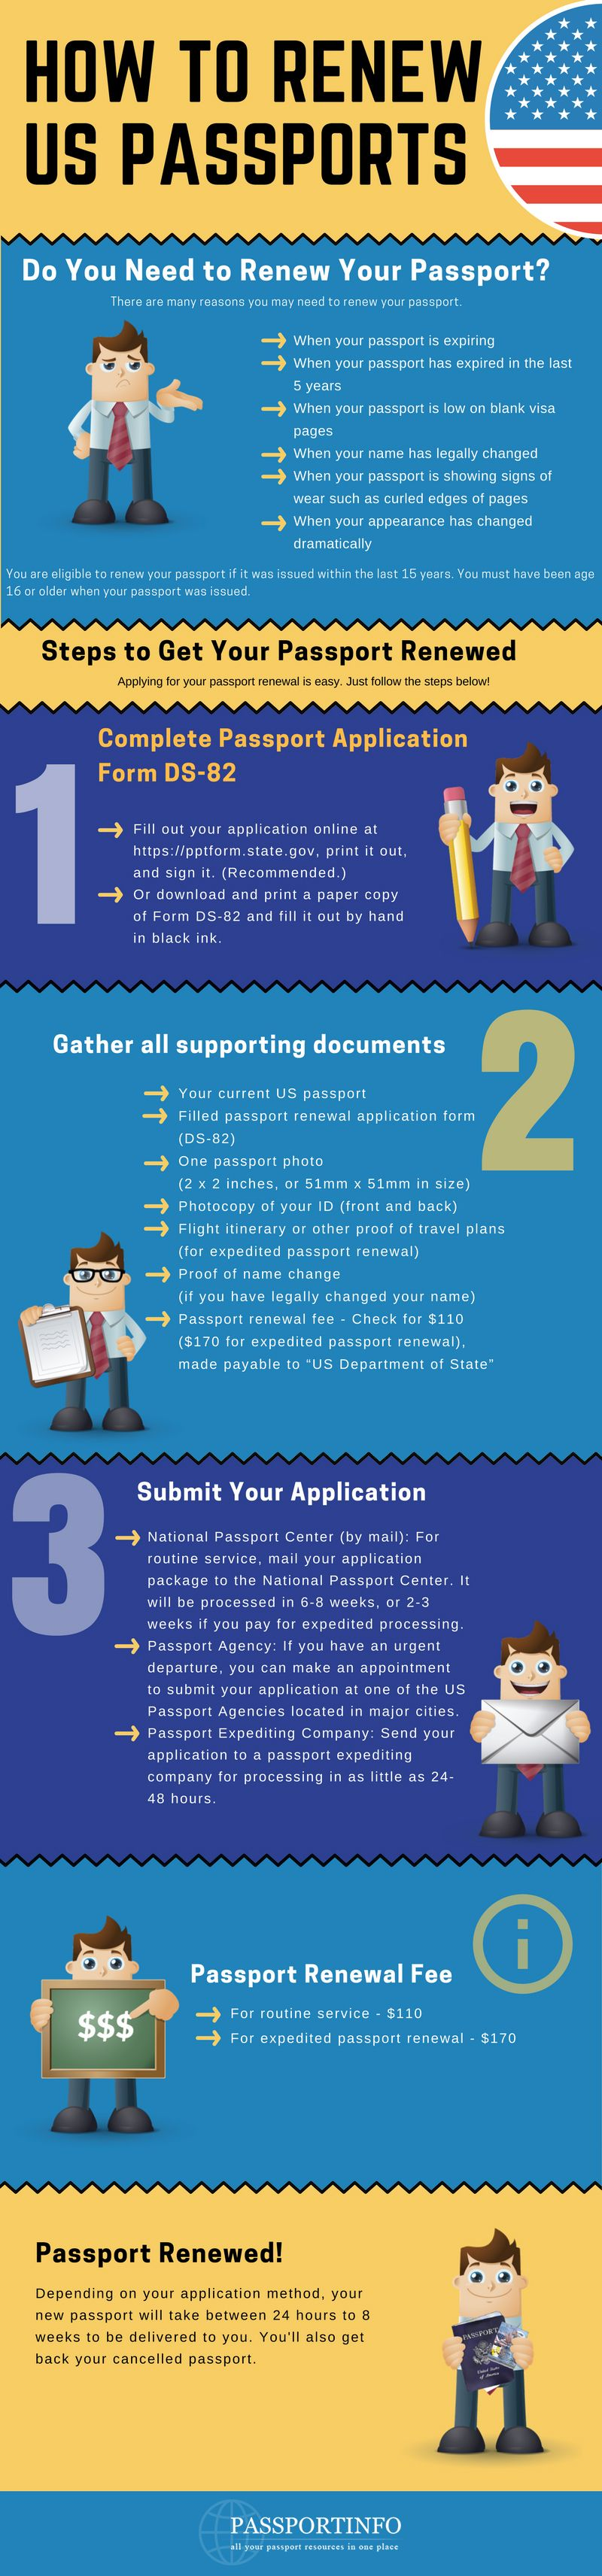 Best 25 passport renewal ideas on pinterest where to renew best 25 passport renewal ideas on pinterest where to renew passport apply for passport and renew expired passport falaconquin